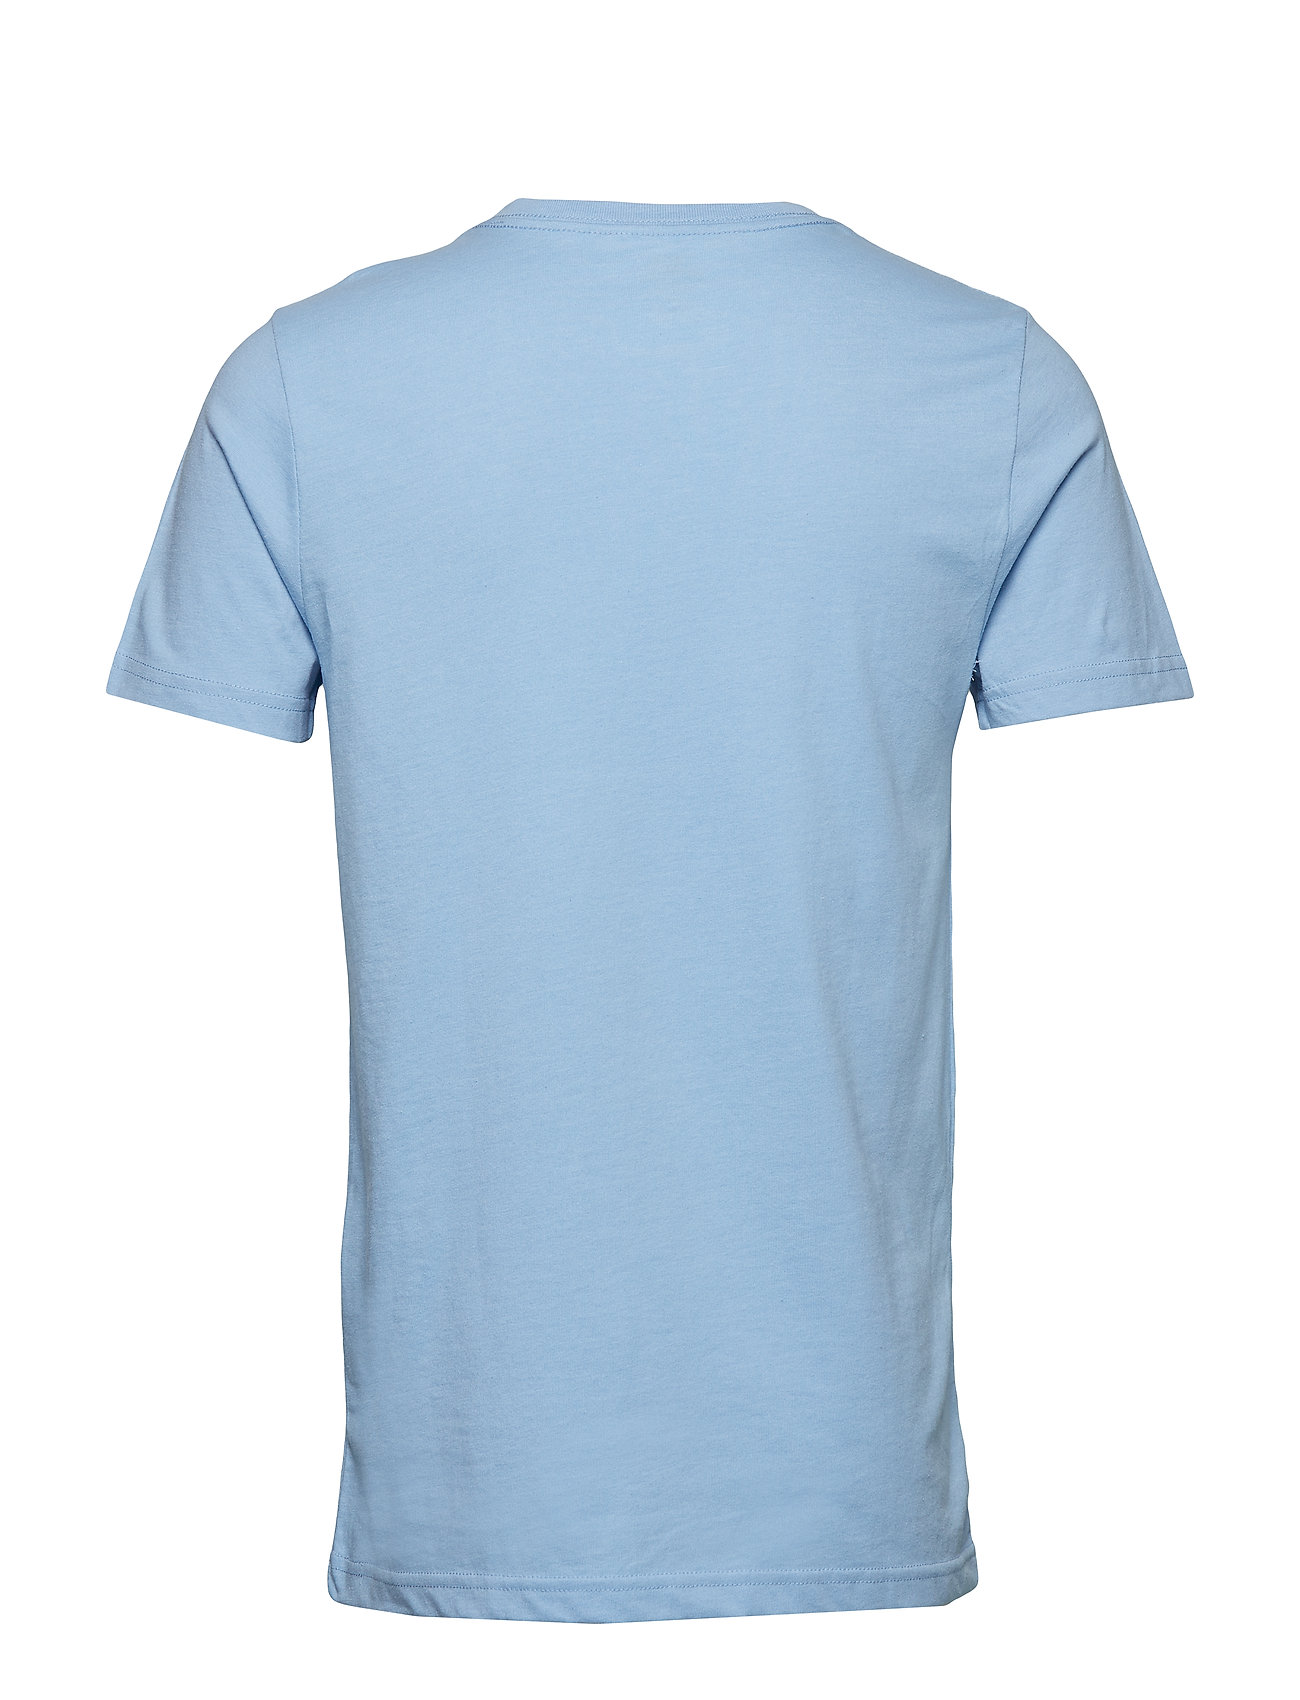 Baja Surf Surf Teeplacid BlueIzod Graphic Baja Graphic BlueIzod Teeplacid PZXkTOuwi